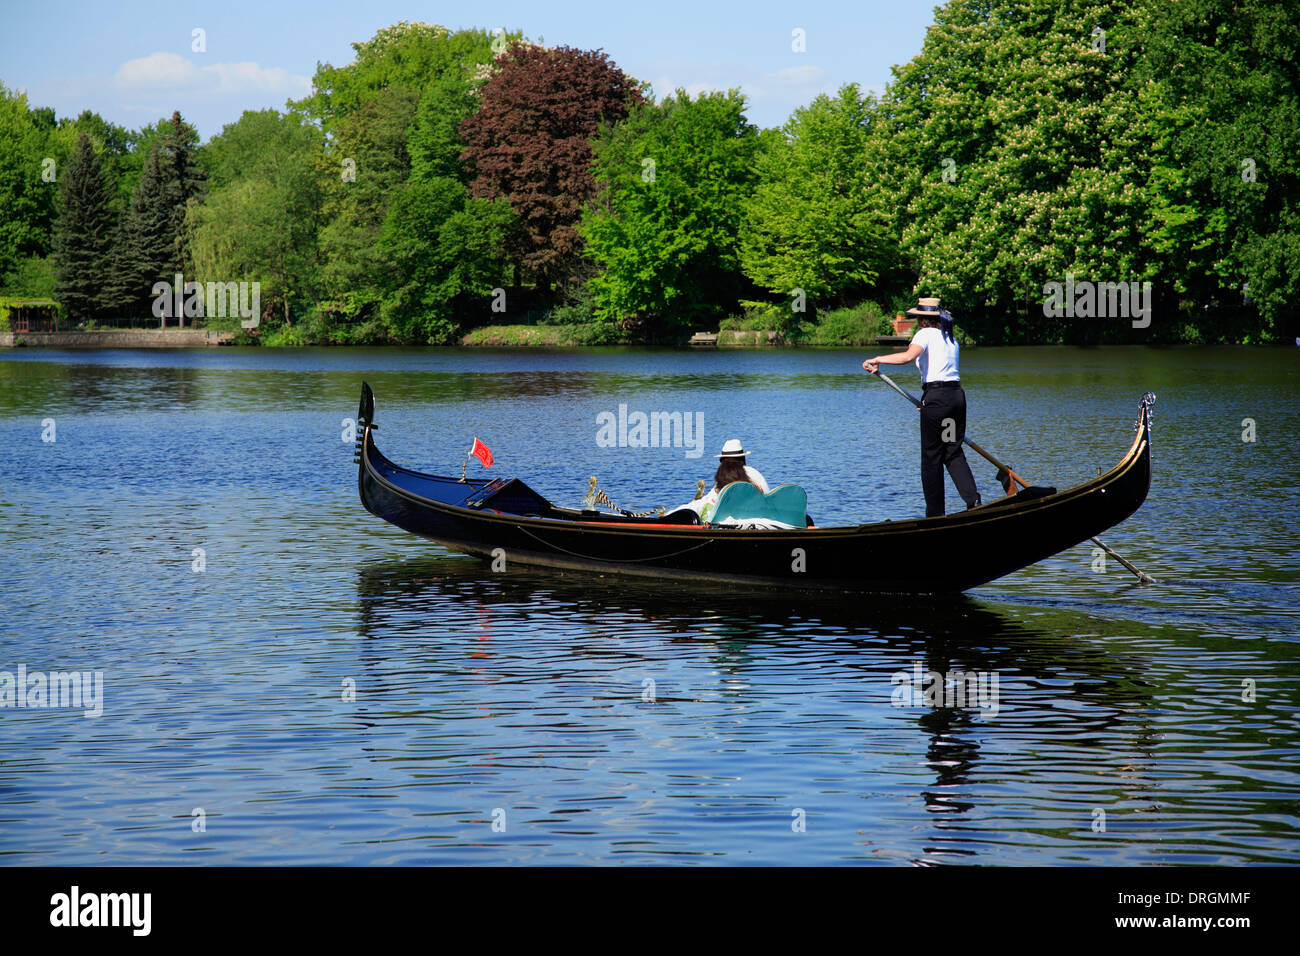 Female gondoliera on lake Alster, Hamburg, Germany, Europe Stock Photo